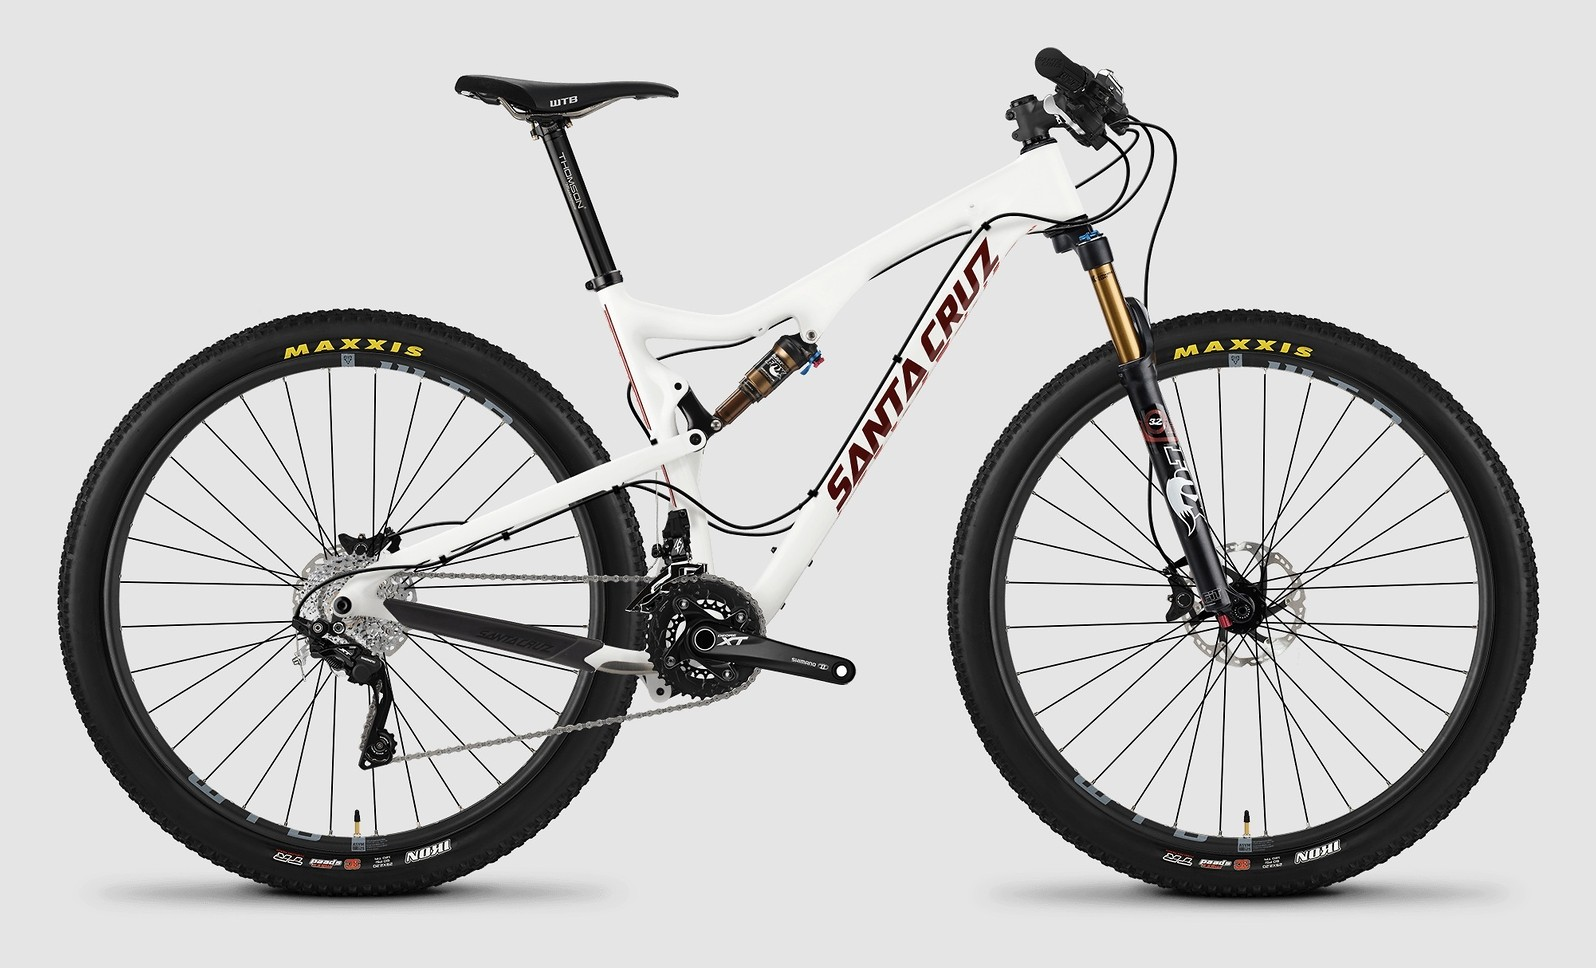 2015 Santa Cruz Tallboy Carbon C XT bike - white